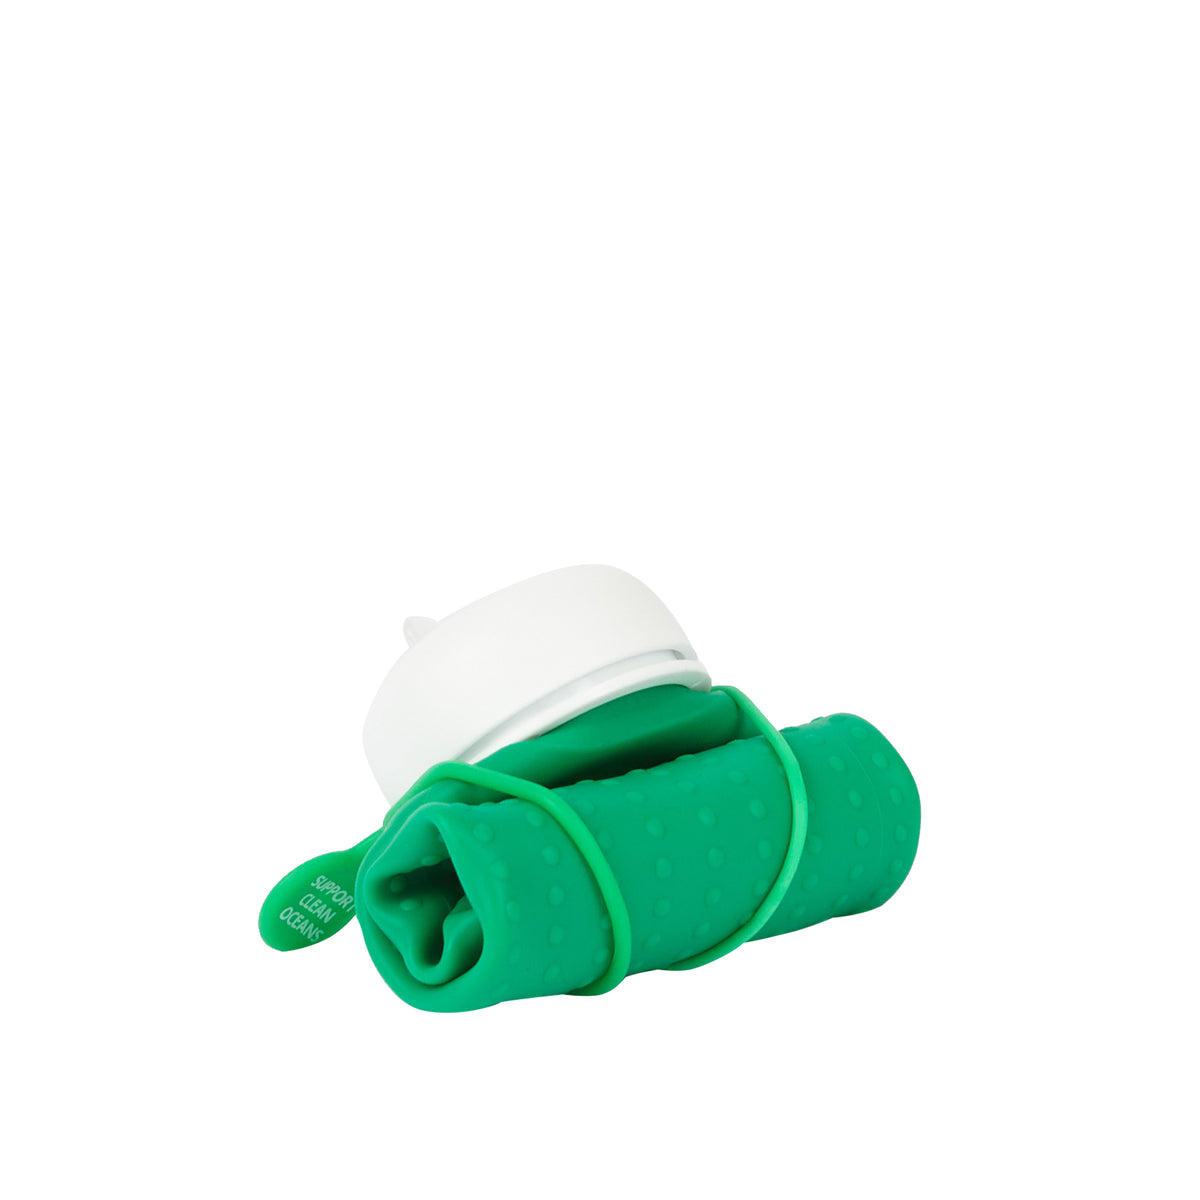 olla Bottle - Green, White Lid + Green Strap - rolled